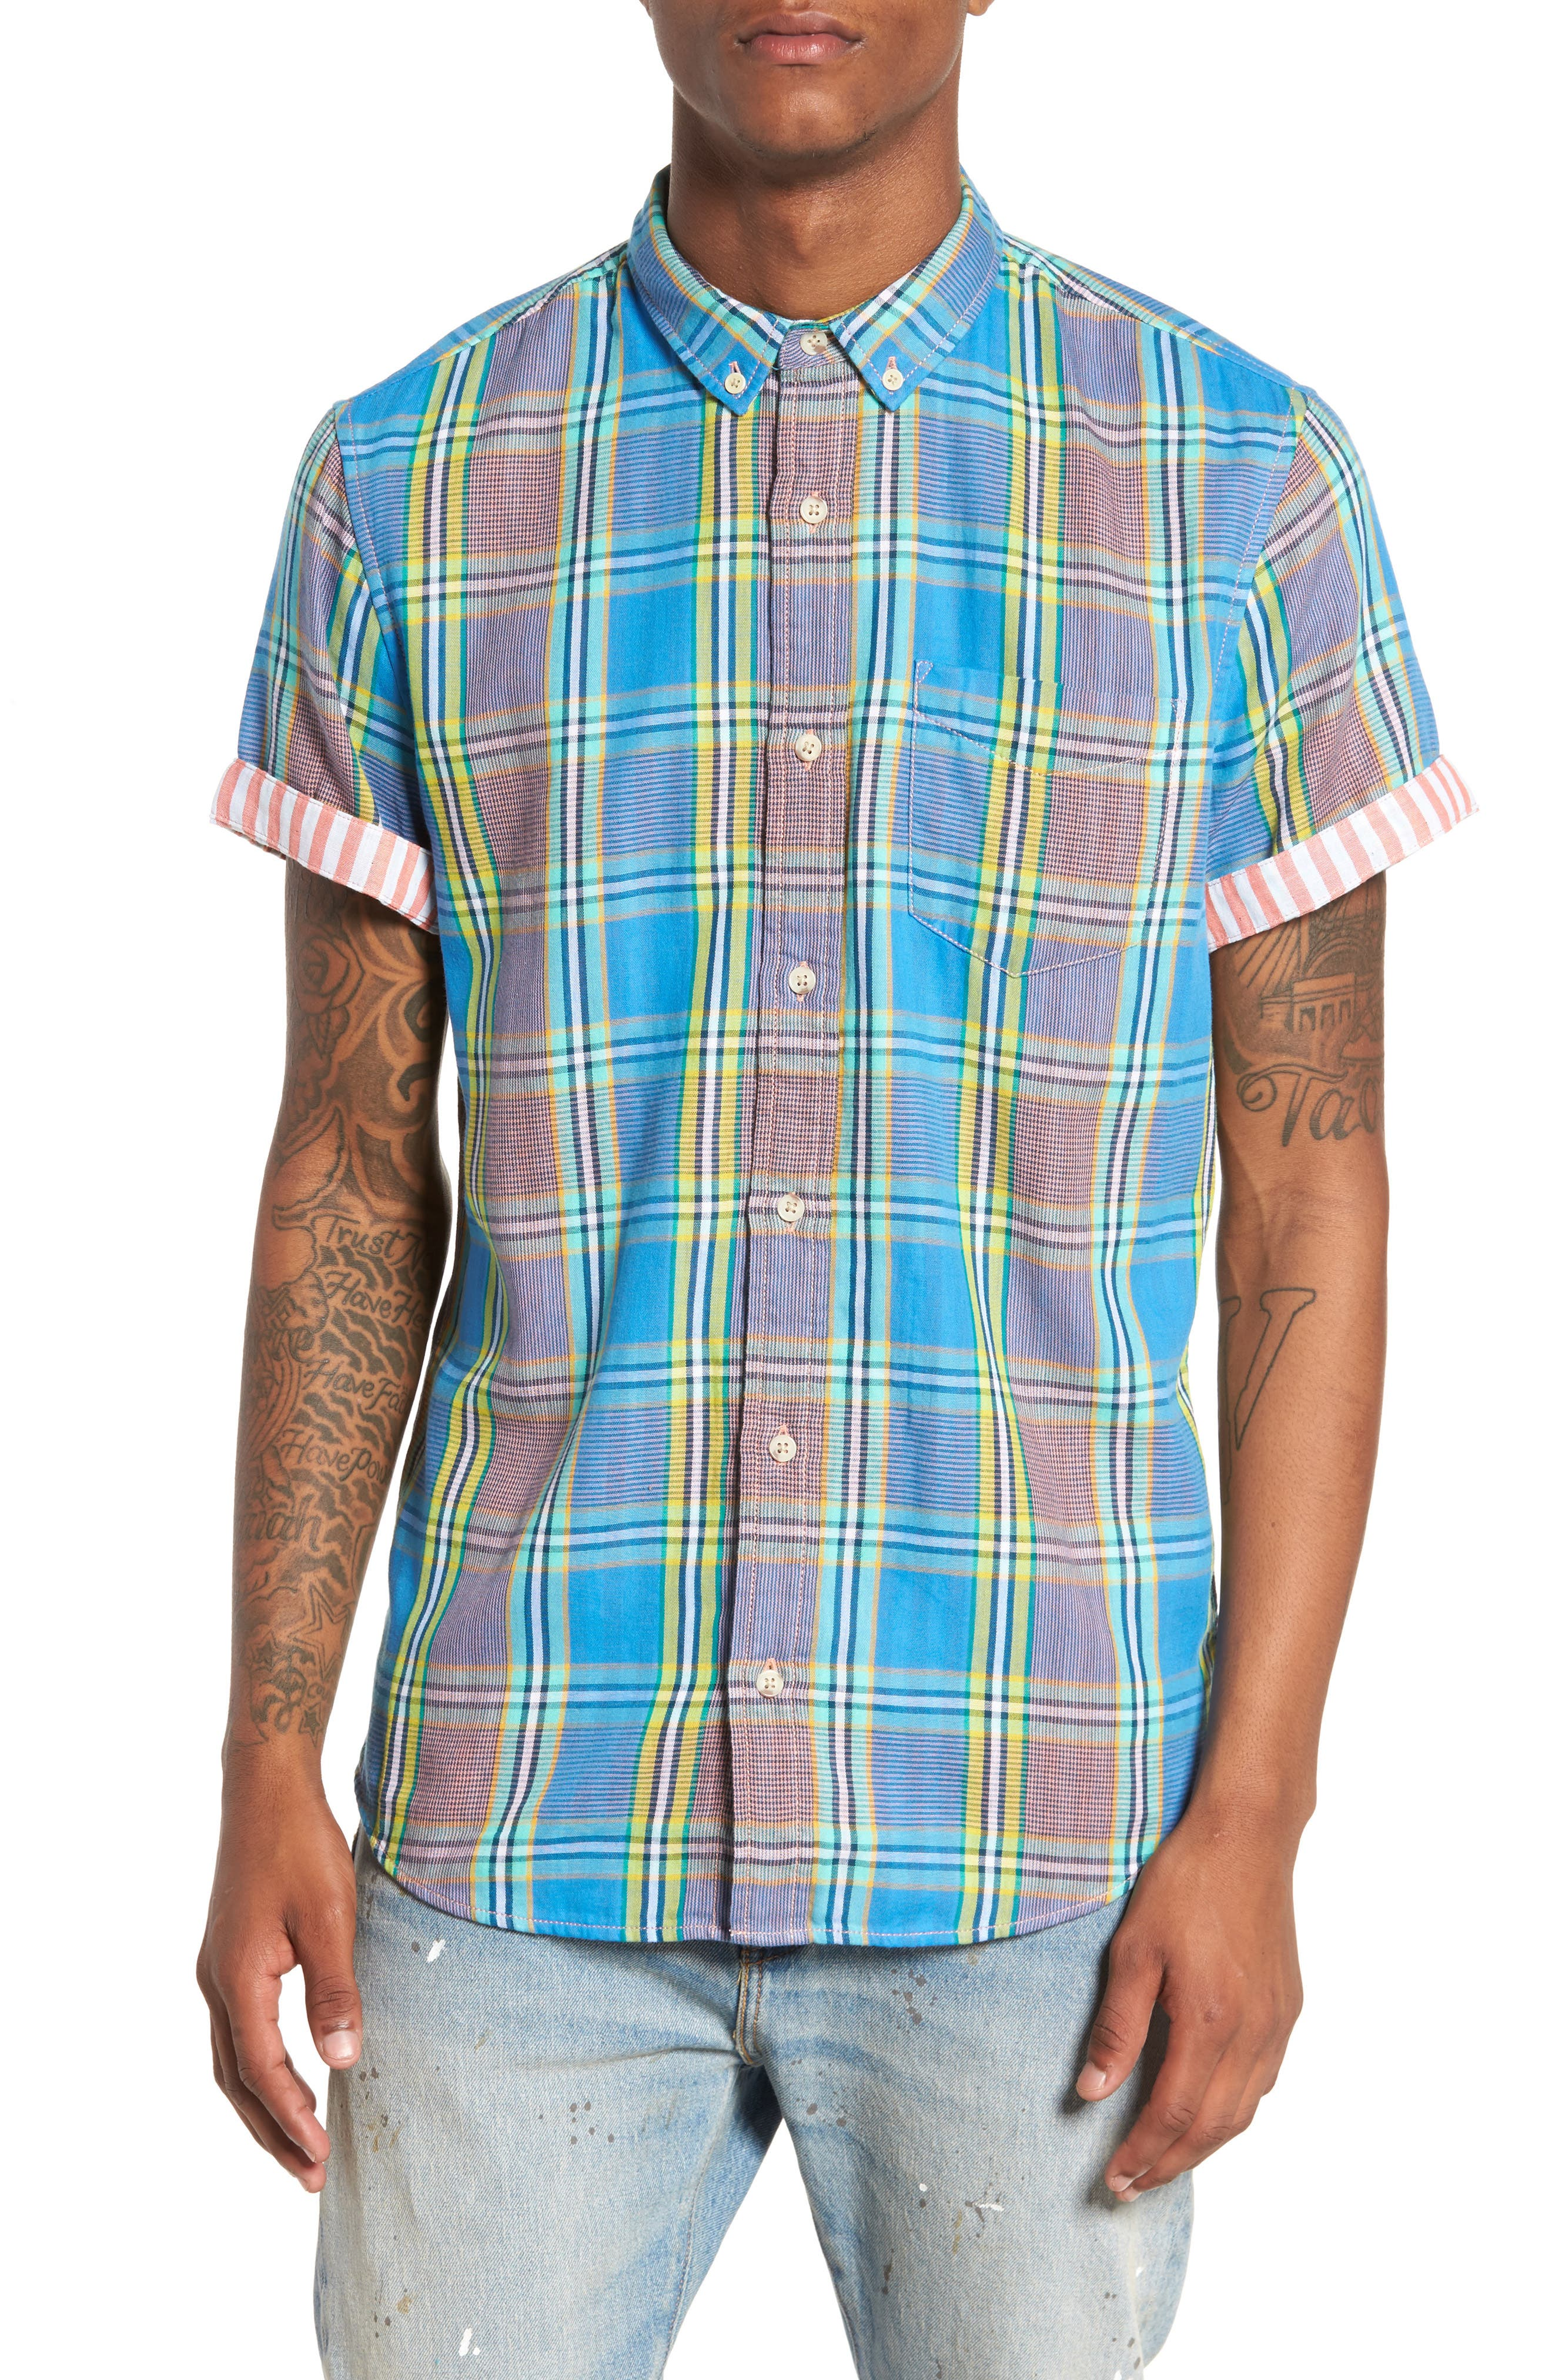 Short Sleeve Plaid Duofold Shirt,                         Main,                         color, Blue Green Plaid Duo Fold